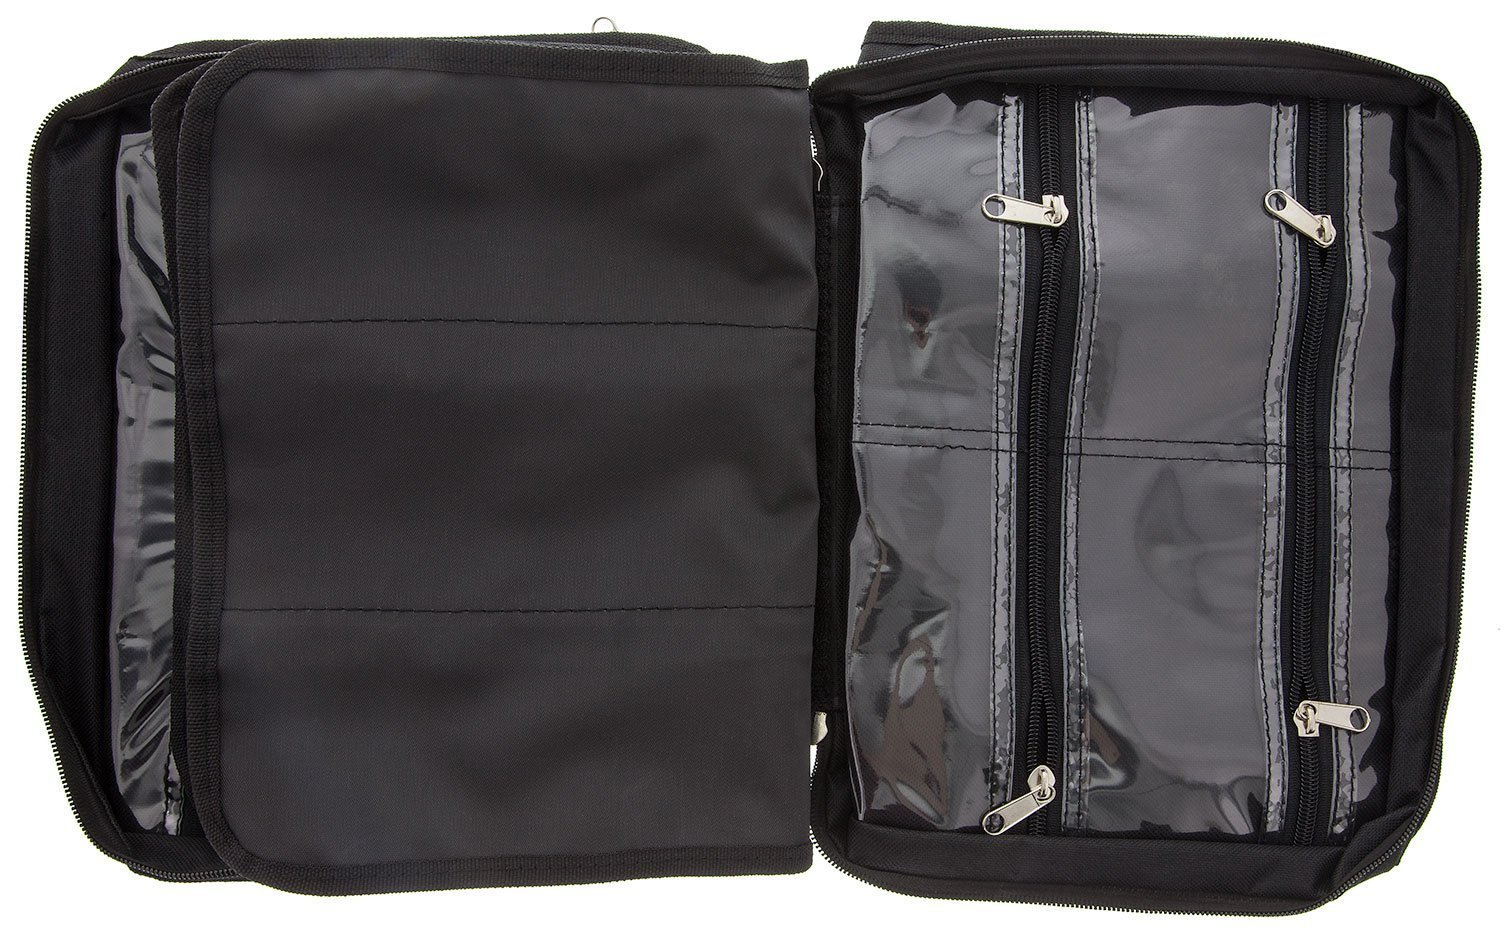 BeadSmith Black Crafter's Tote Bag, with 2 Removable Pockets and 23 Compartments 12x10 inch UK Shop g